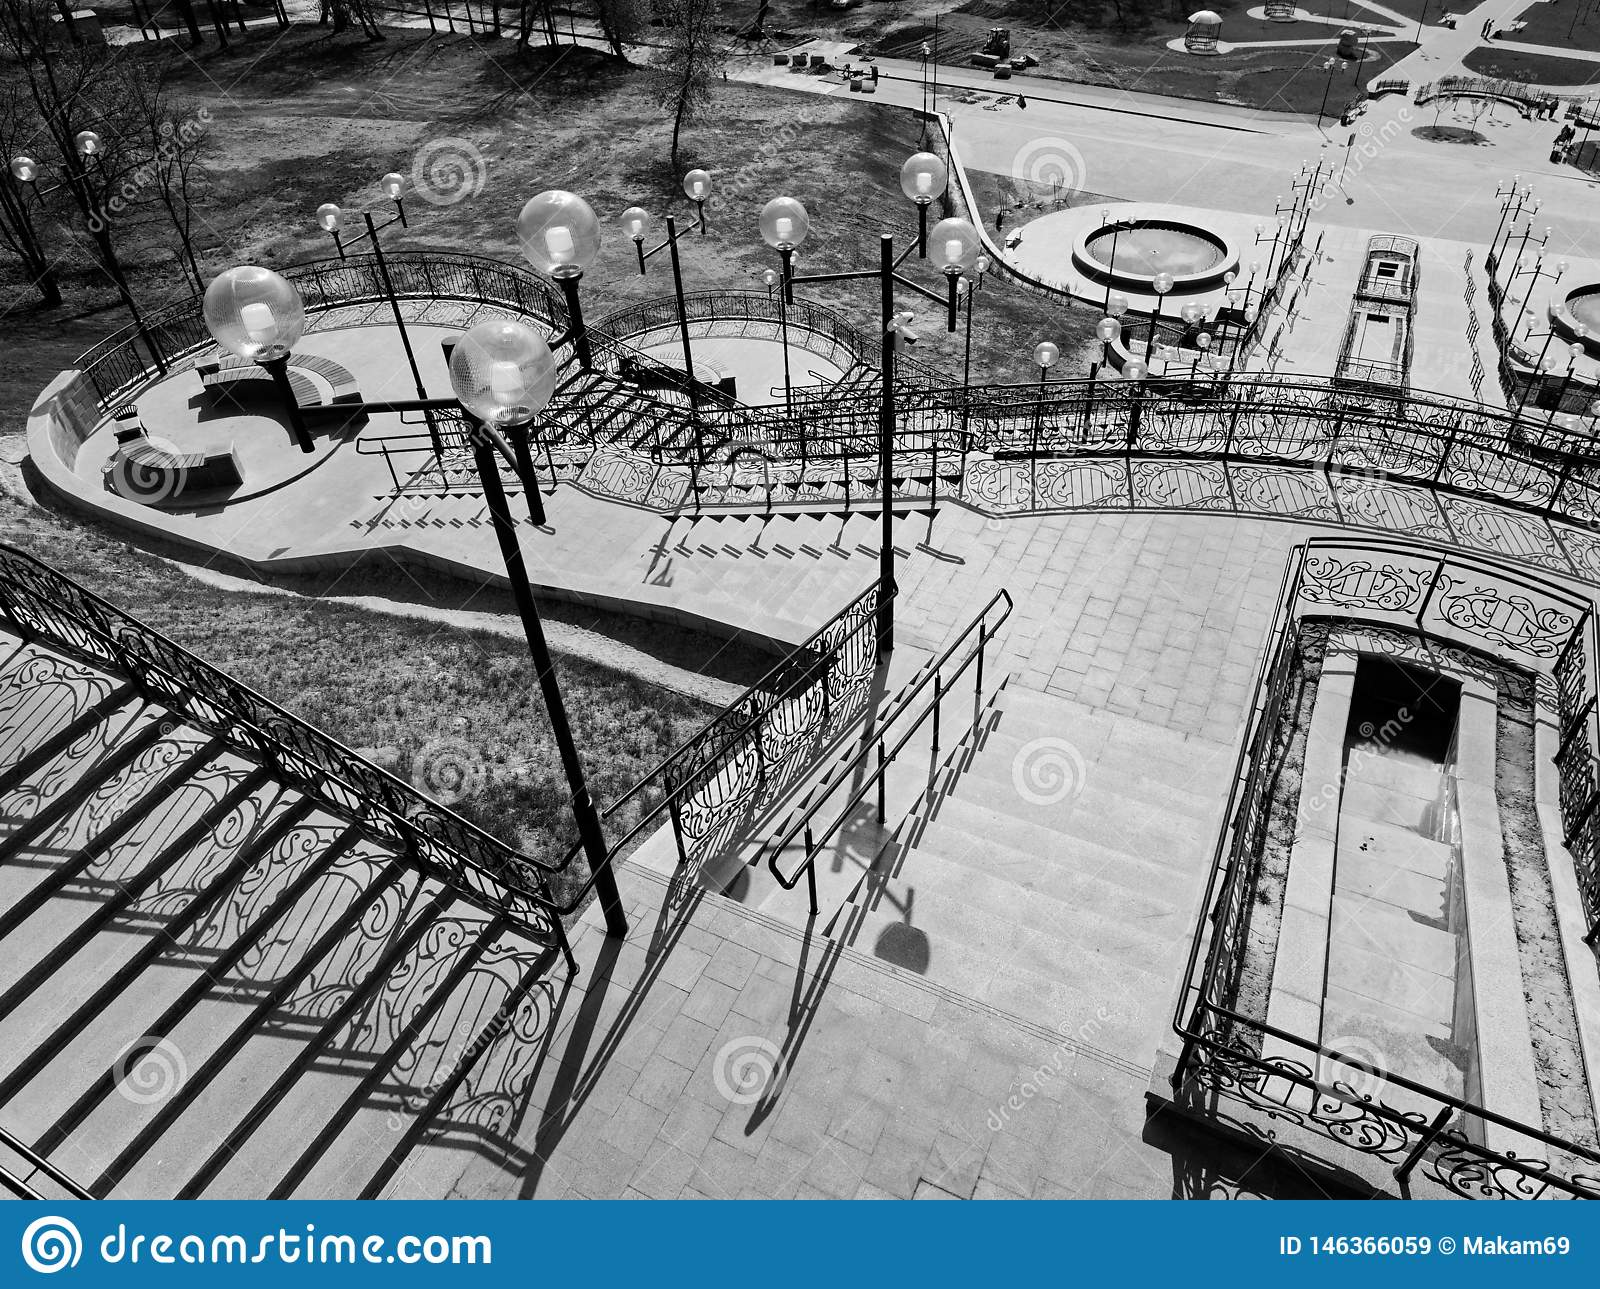 MOGILEV, BELARUS - APRIL 27, 2019: park area with a staircase and a fountain